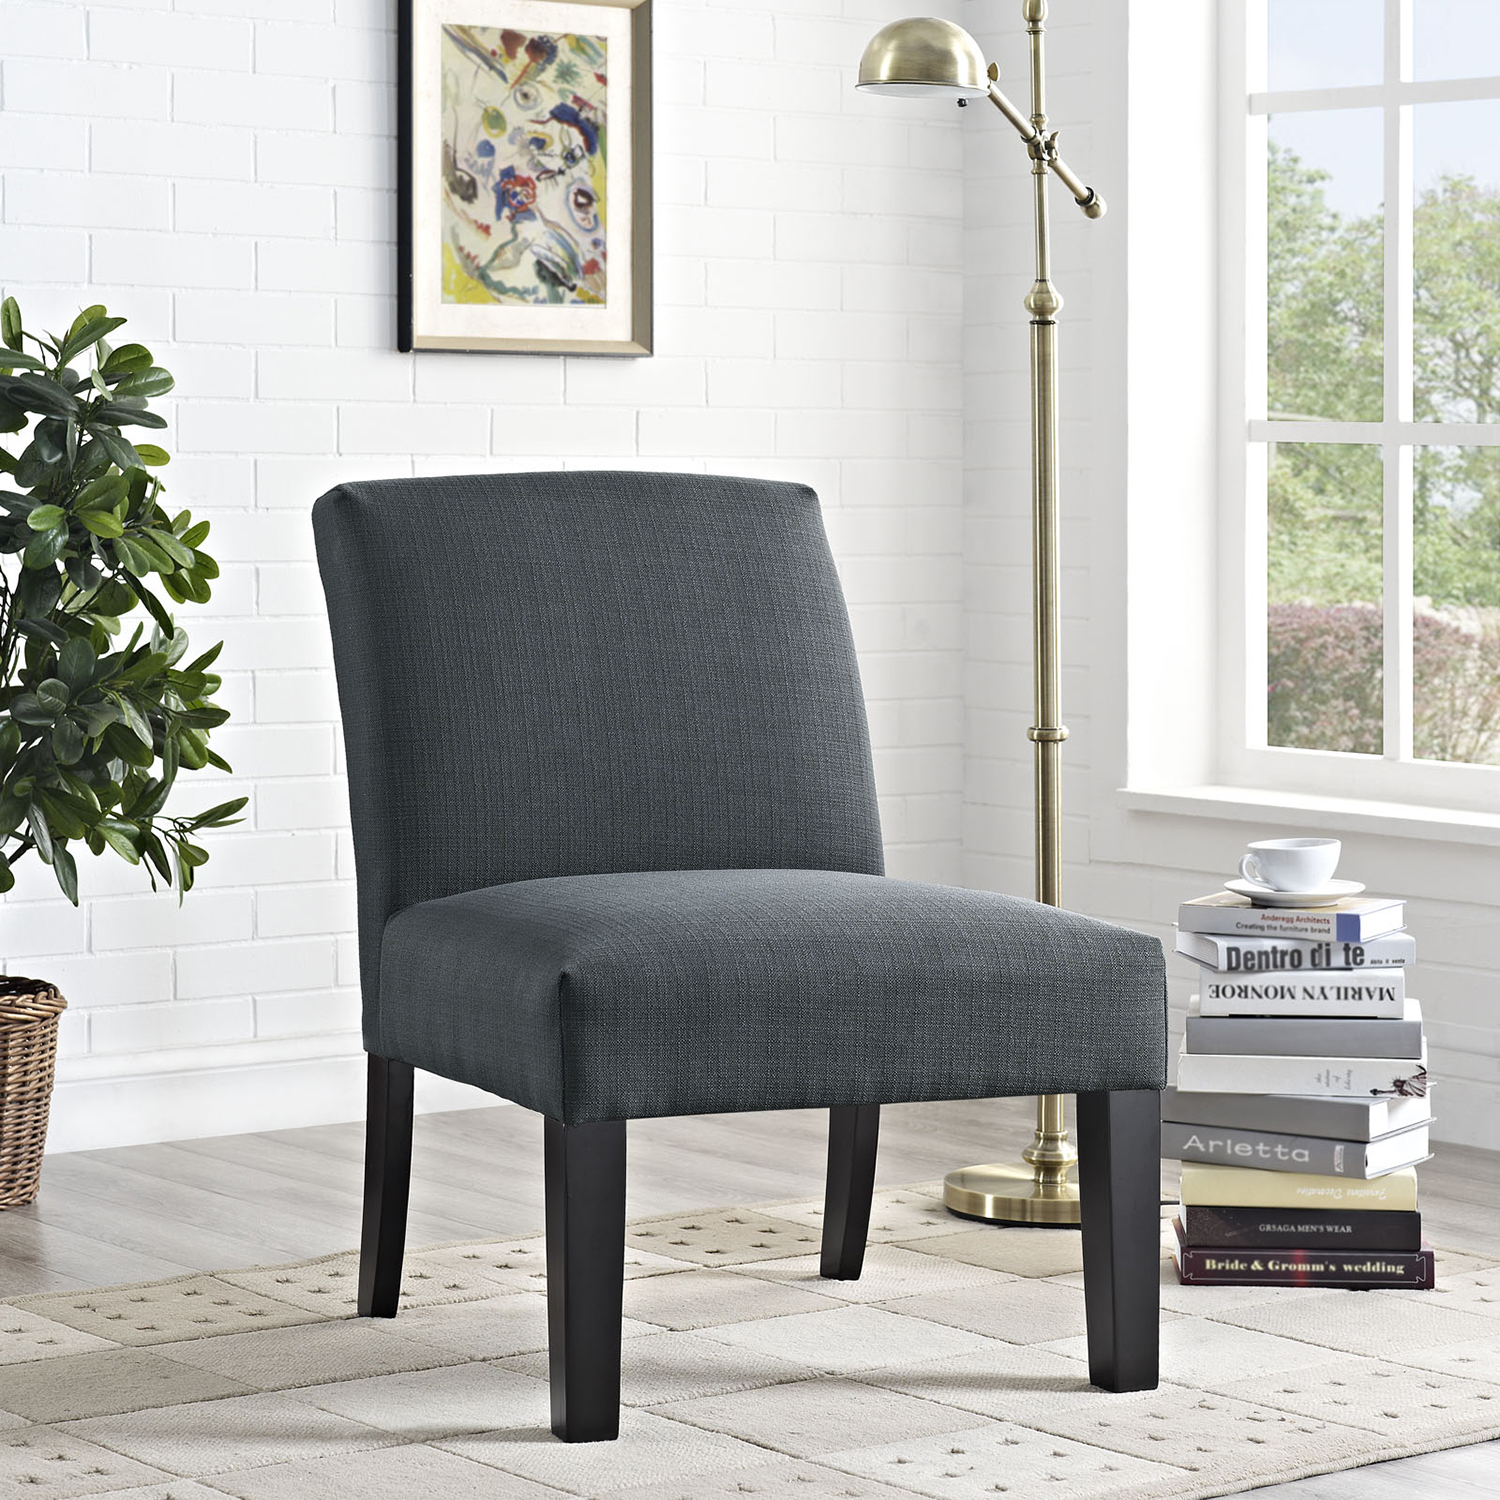 Auteur Fabric Accent Chair - Wood Legs, Gray - EEI-1401-GRY